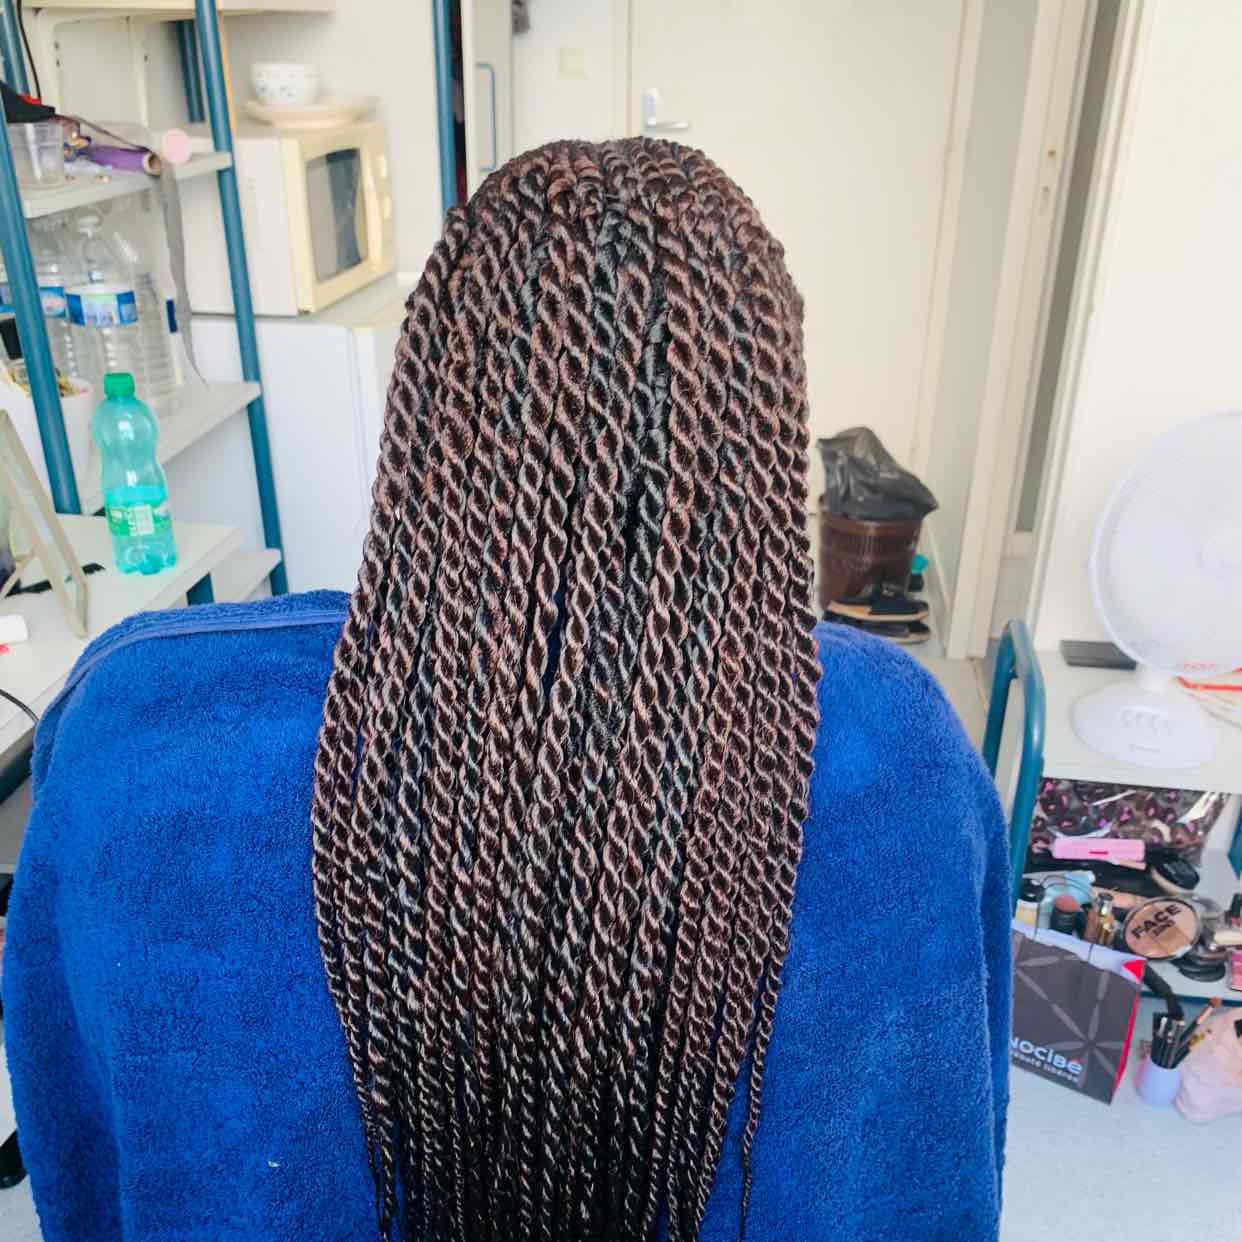 salon de coiffure afro tresse tresses box braids crochet braids vanilles tissages paris 75 77 78 91 92 93 94 95 YKOAUNNW